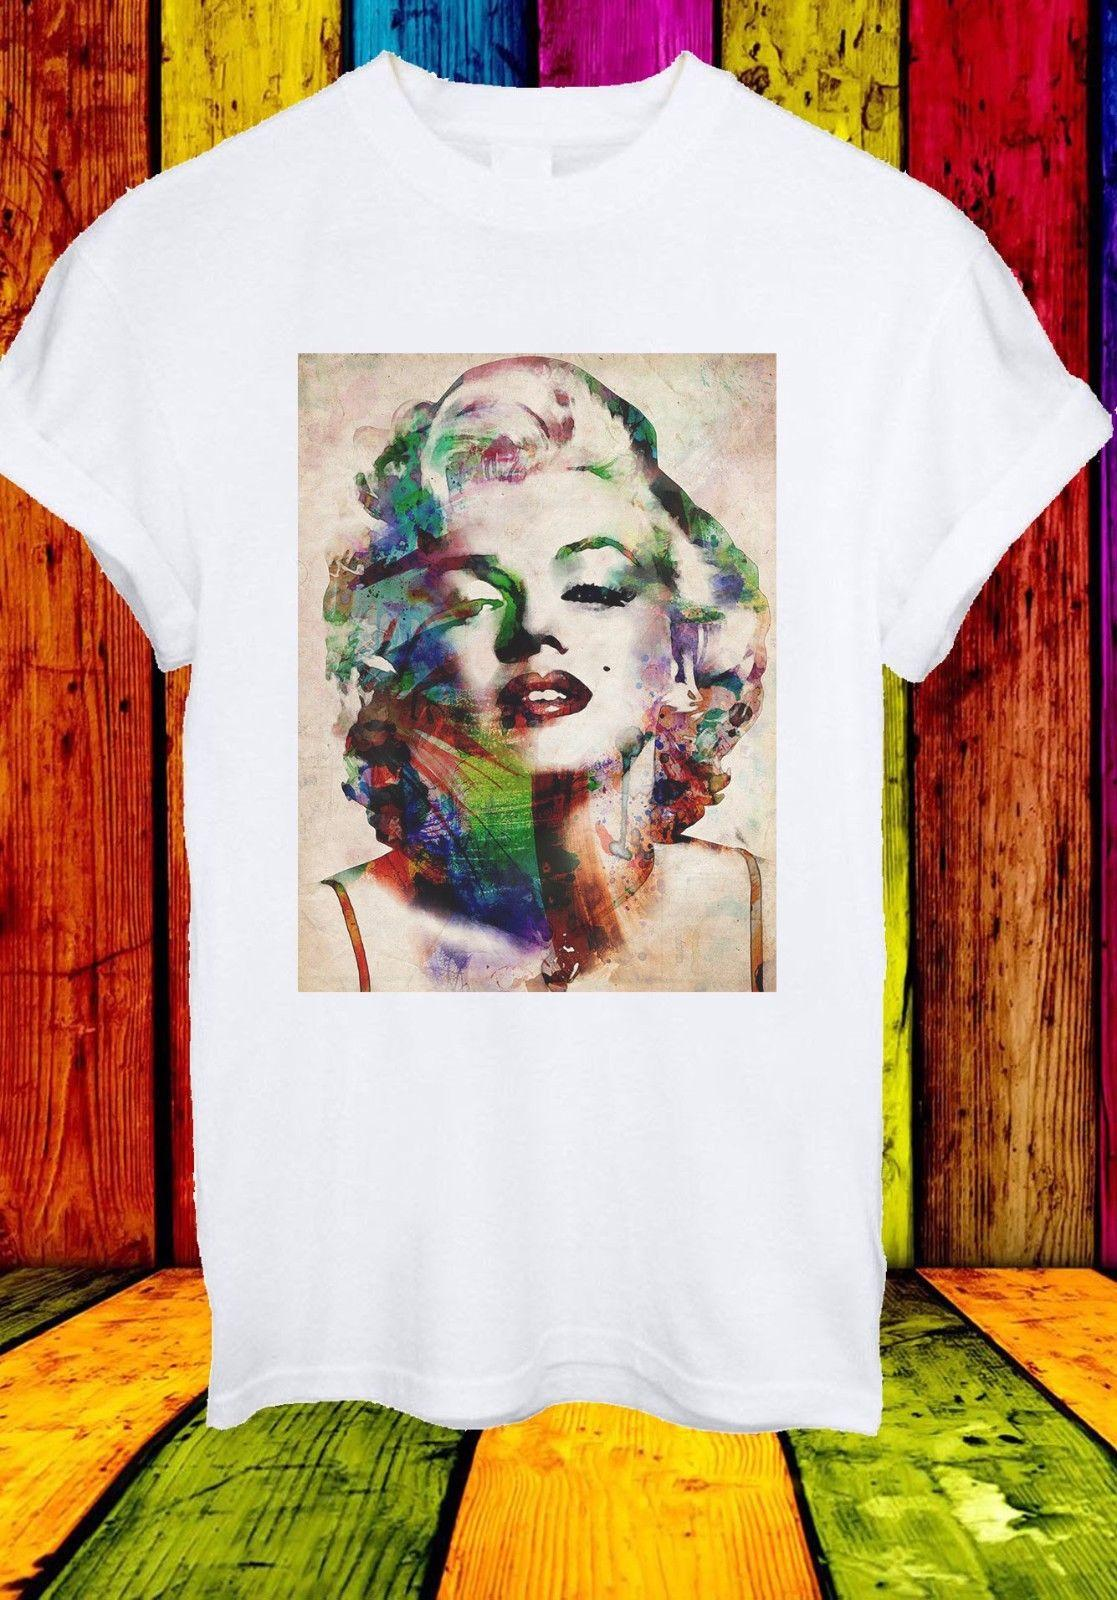 Marilyn Monroe American Actress Blonde Famous Men Women Unisex T Shirt 658  Cool Casual Pride T Shirt Men Unisex New Fashion T Shirt Every Day Funny  Cool ... e20f9d93f0